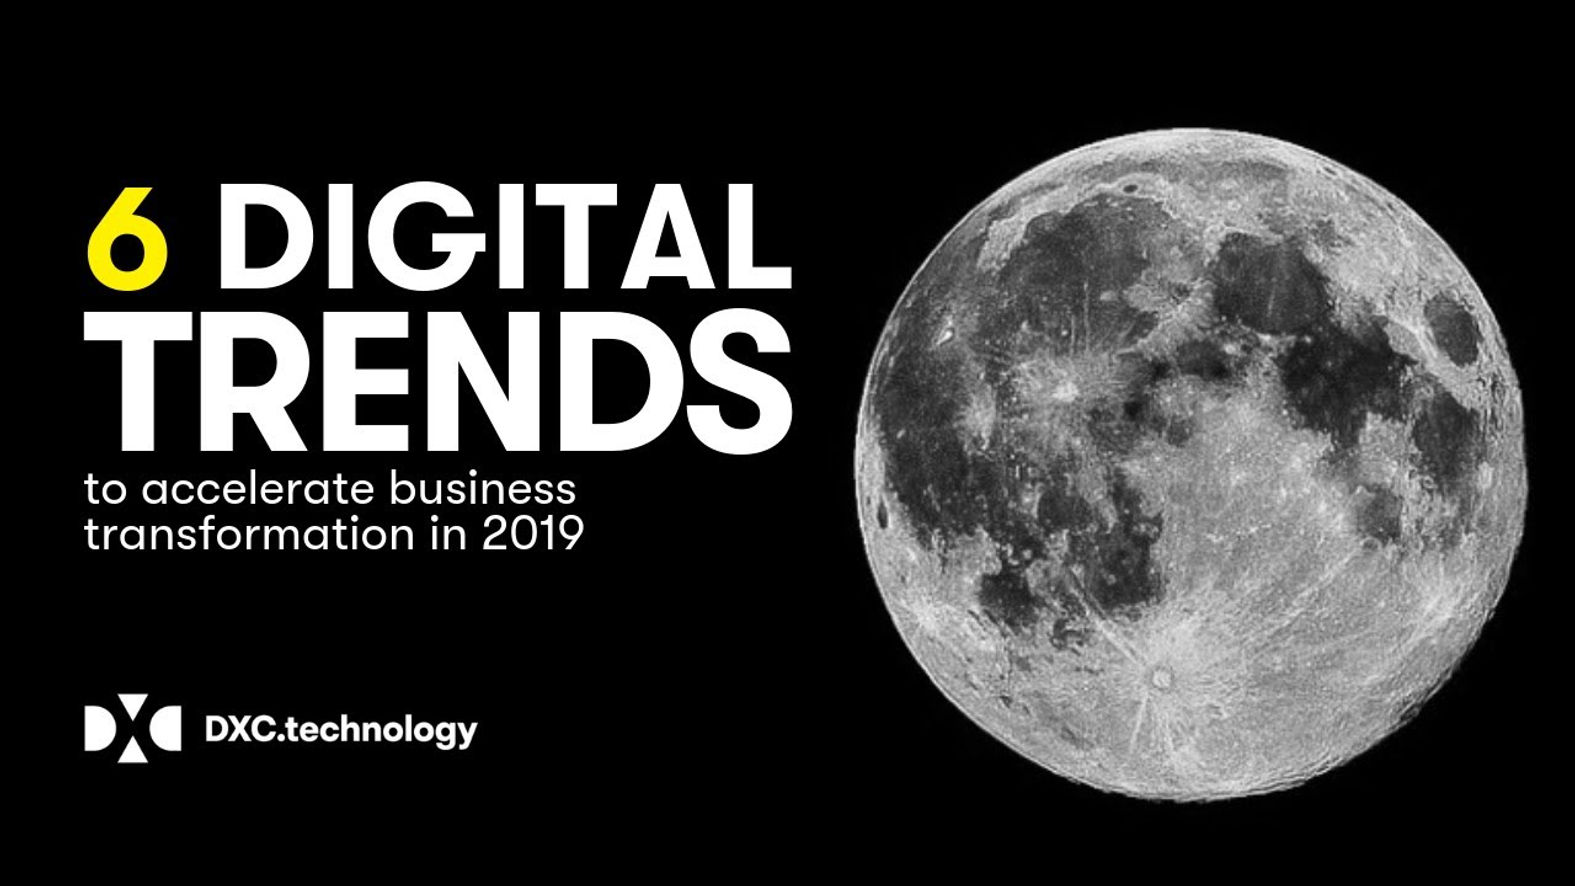 6 Digital Trends Driving Business in 2019